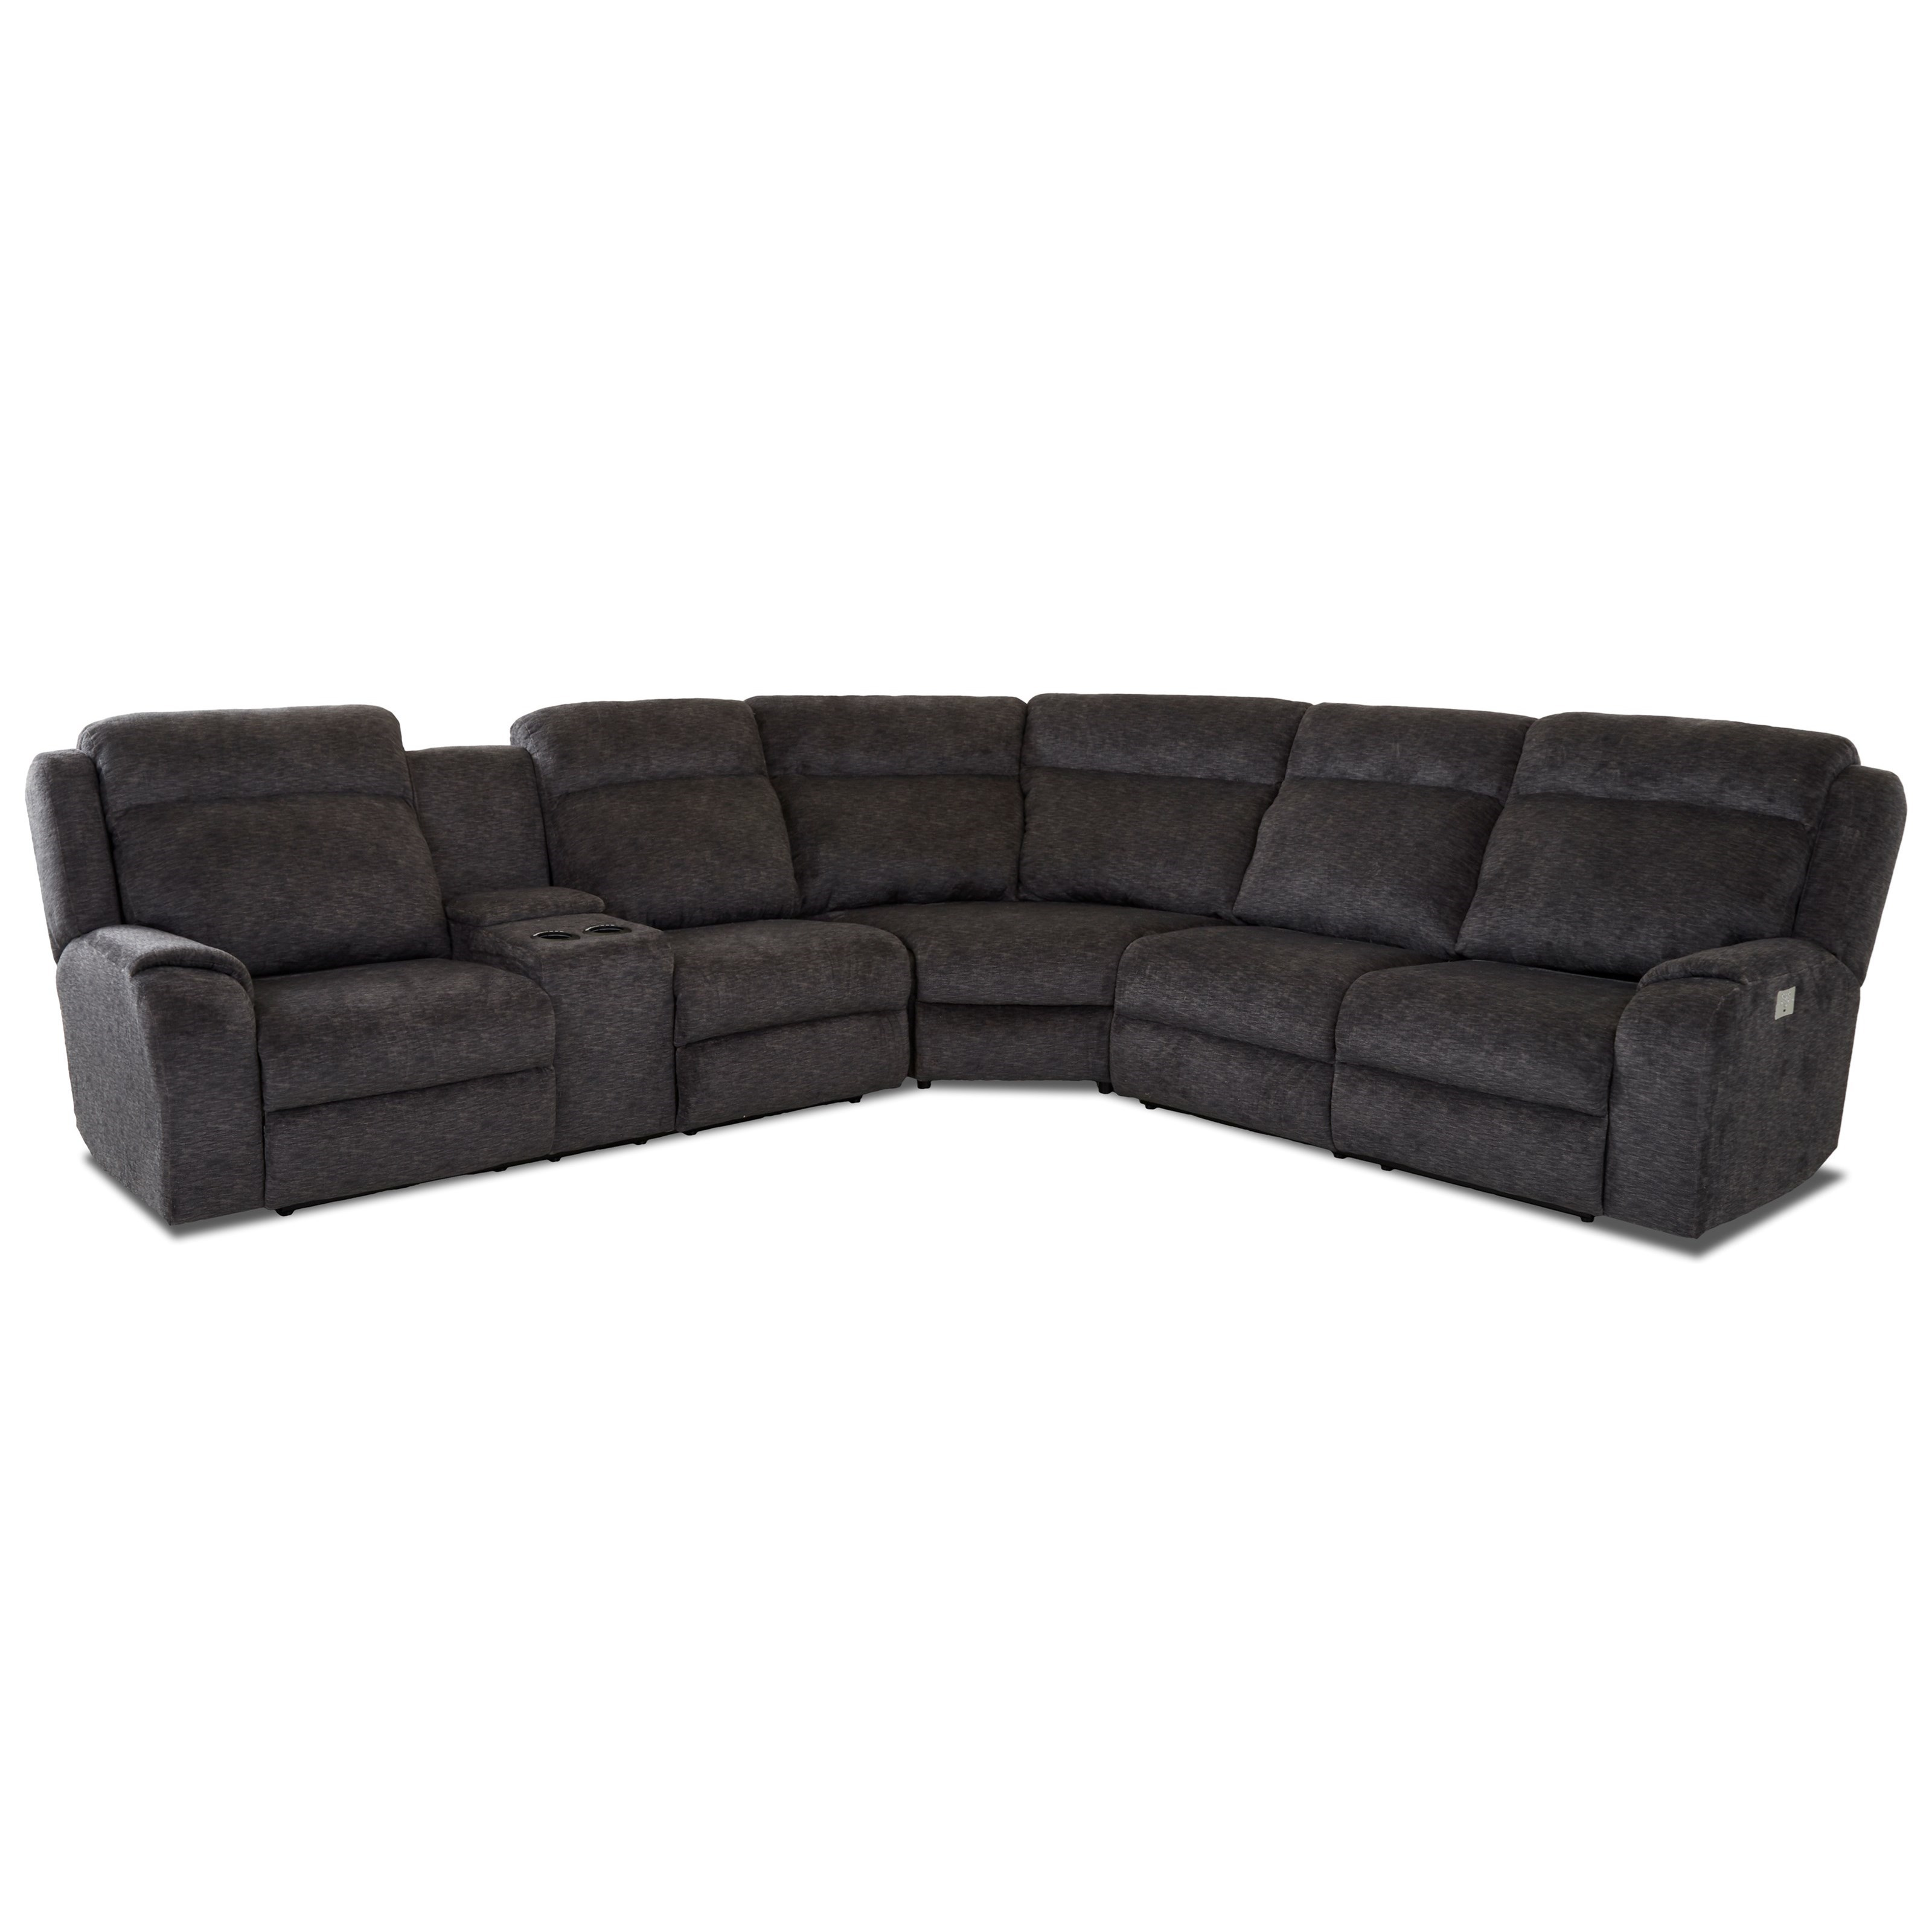 Surprising Merlin 4 Seat Power Reclining Sectional Sofa Gmtry Best Dining Table And Chair Ideas Images Gmtryco